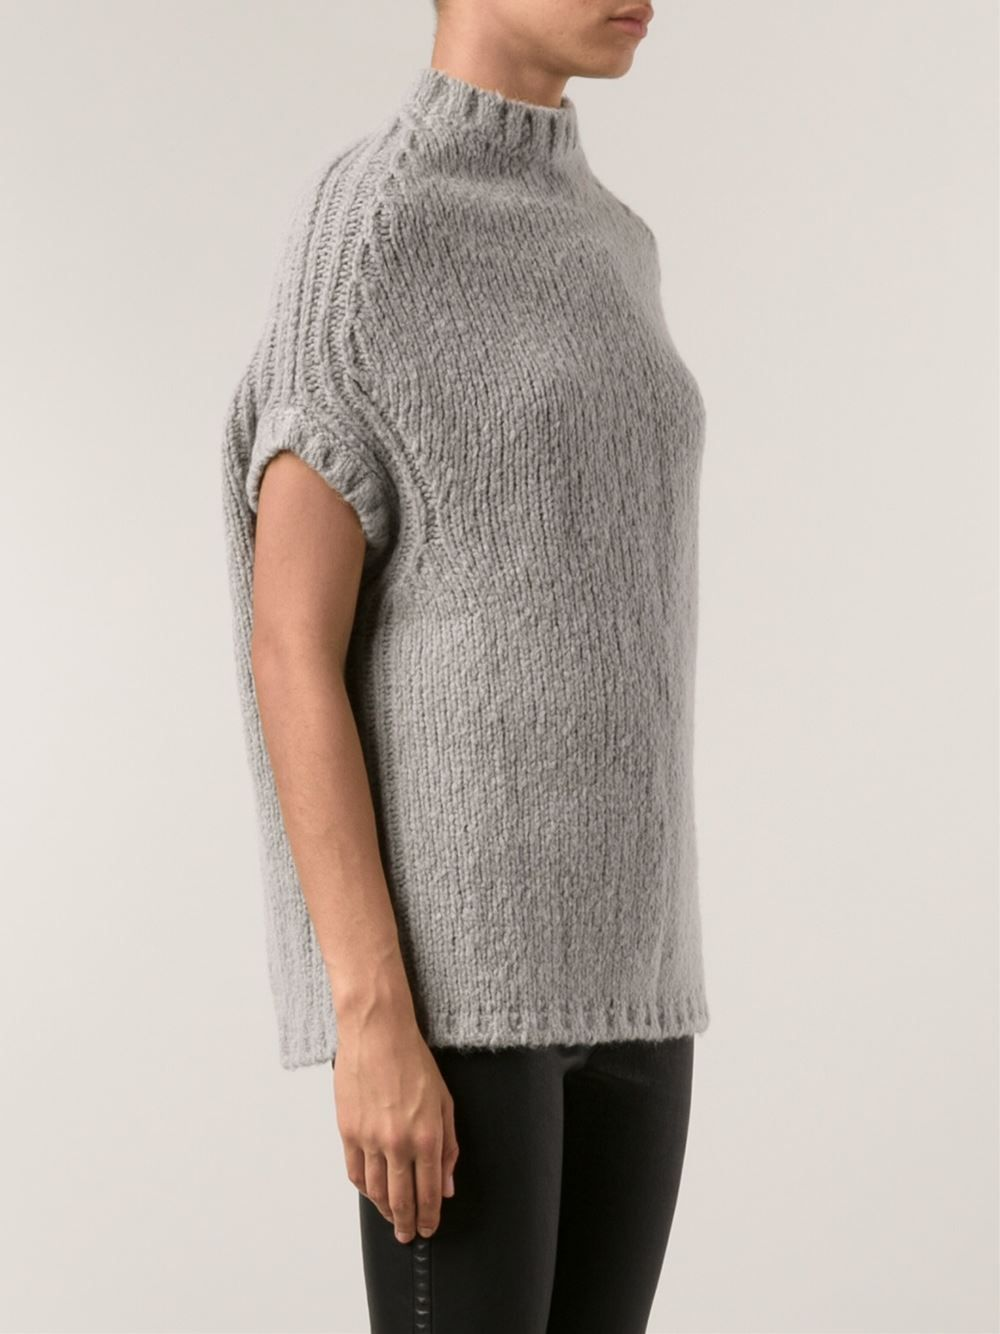 Rick Owens Knit Sweater - verrry interesting and easy to wear